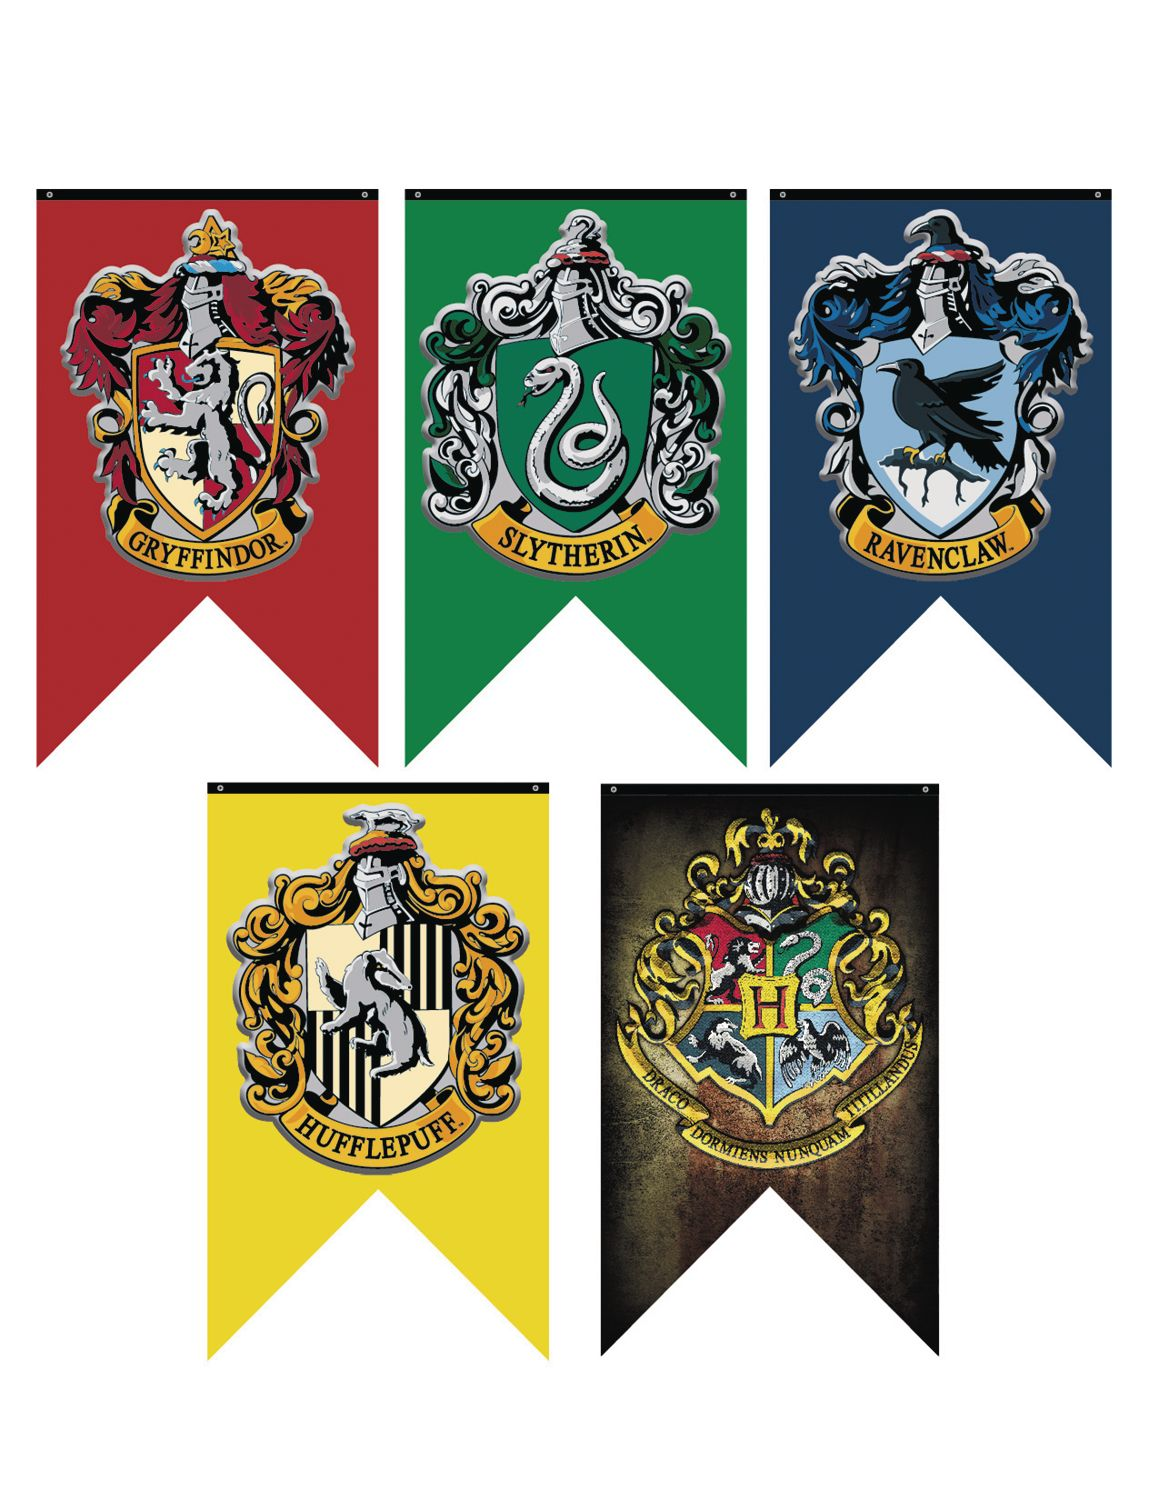 Handy image intended for hogwarts printable